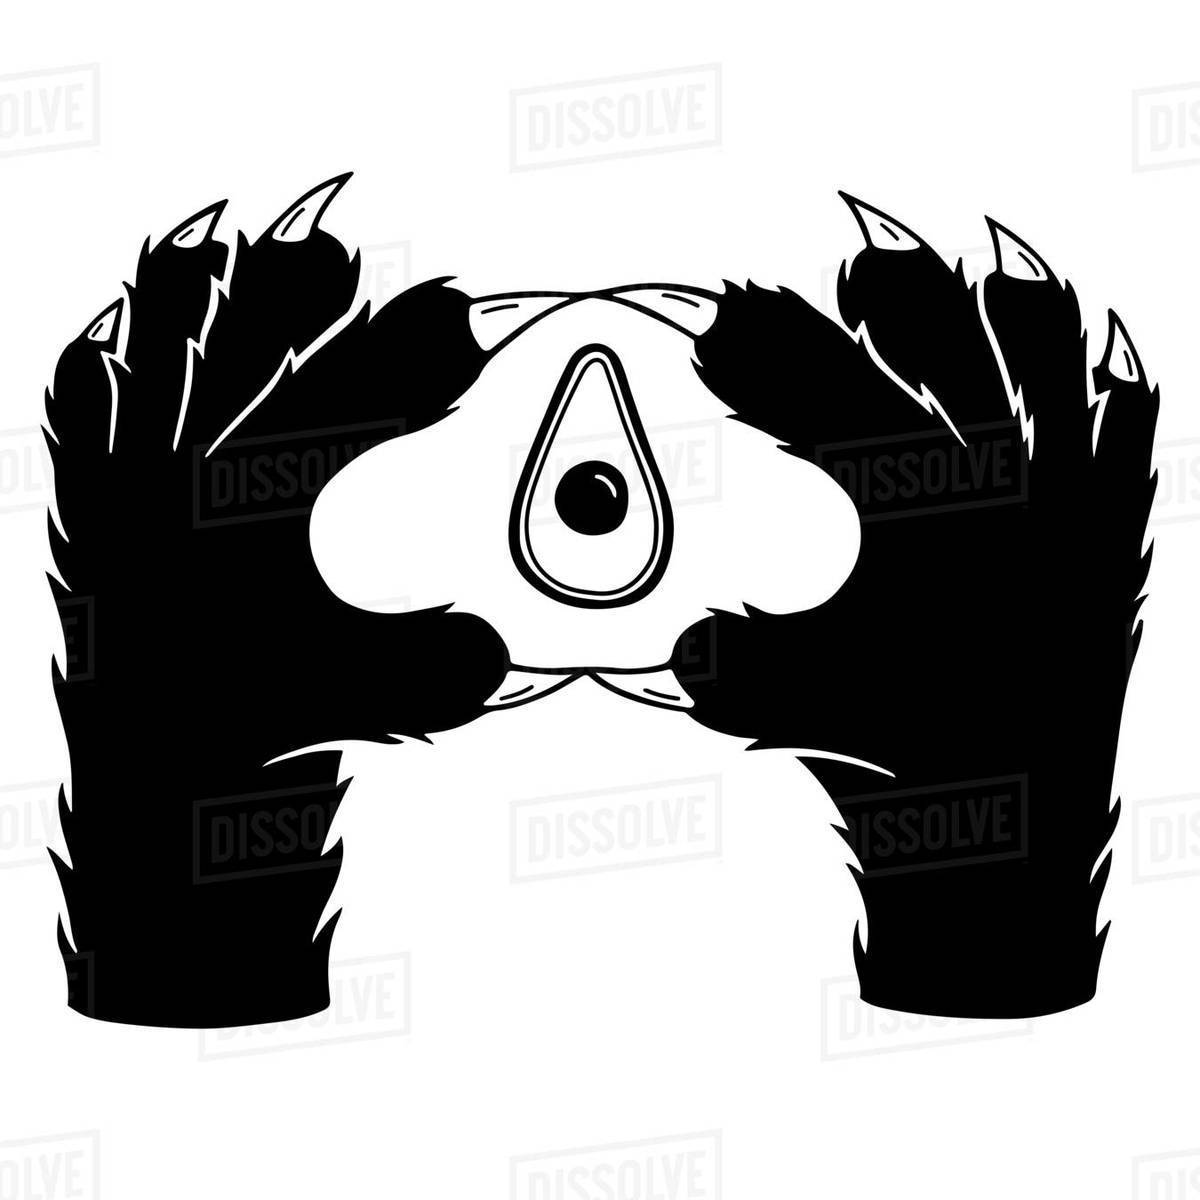 Illustration of a cat's paws gesturing against white background Royalty-free stock photo